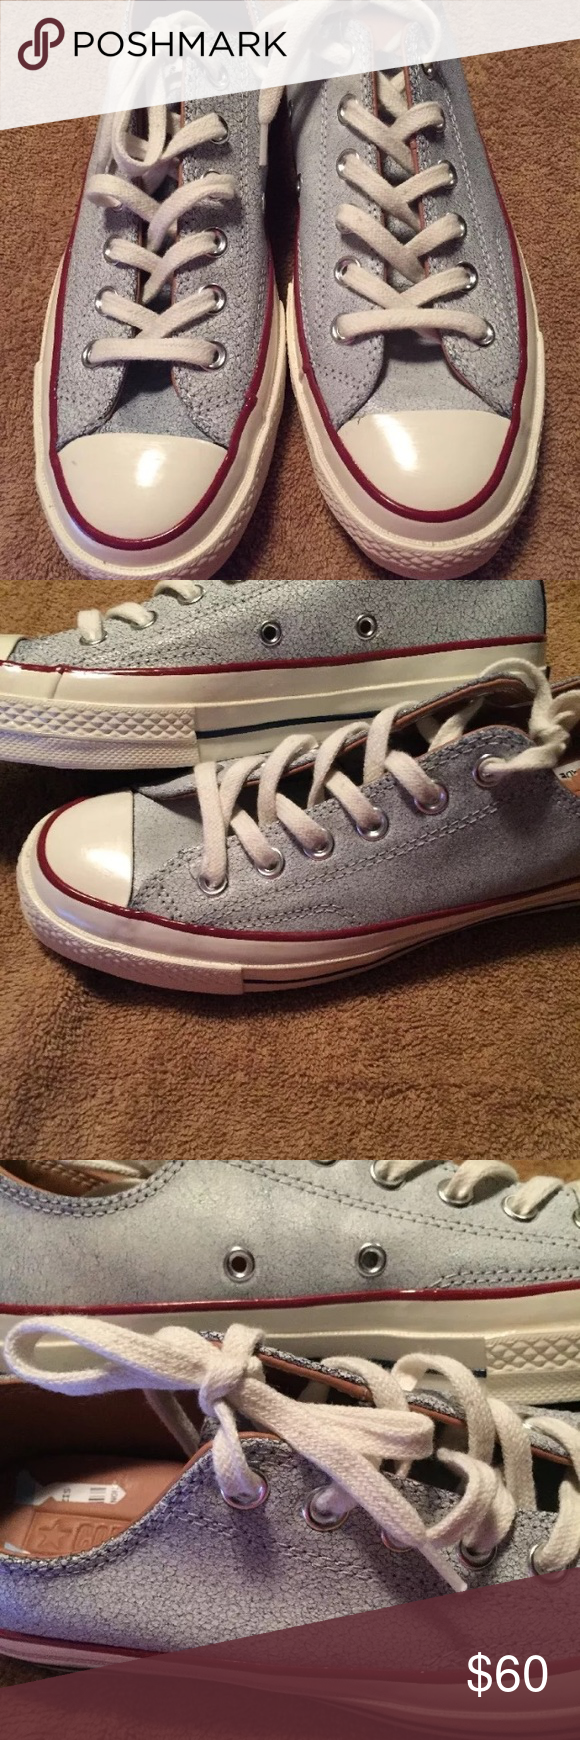 63b7000ff63726 Unisex CONVERSE 70s CRACKED LEATHER SNEAKERS SZ7.5 CONVERSE CHUCK TAYLOR  NEW WITHOUT BOX WAS